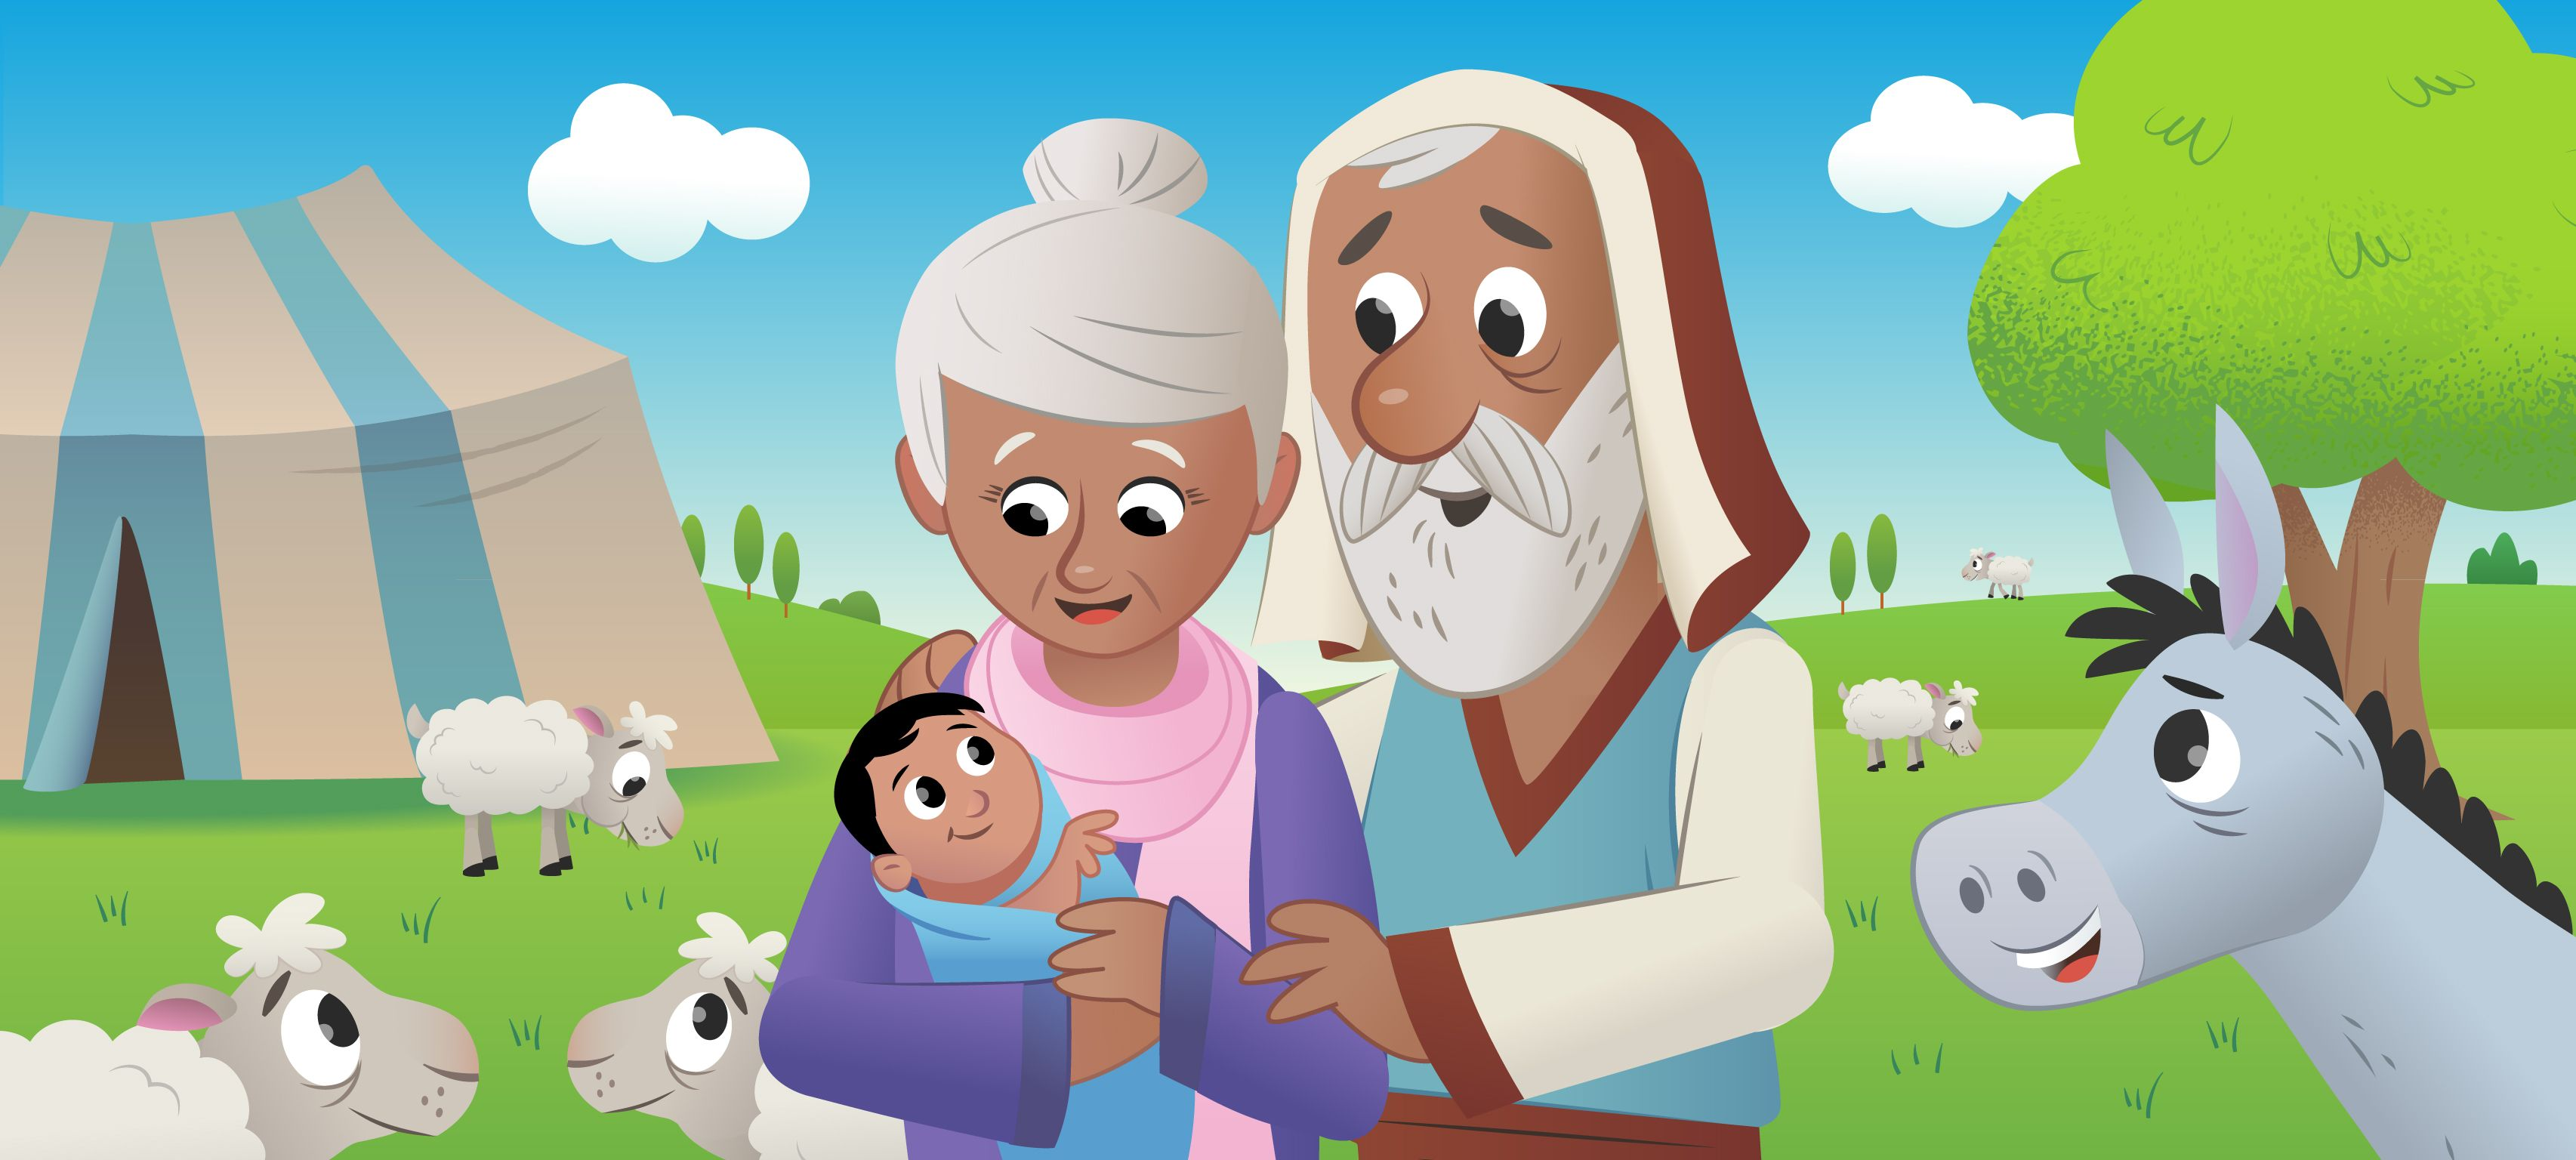 the bible for kids abraham - Google Search   KingdomABC: A is for ...